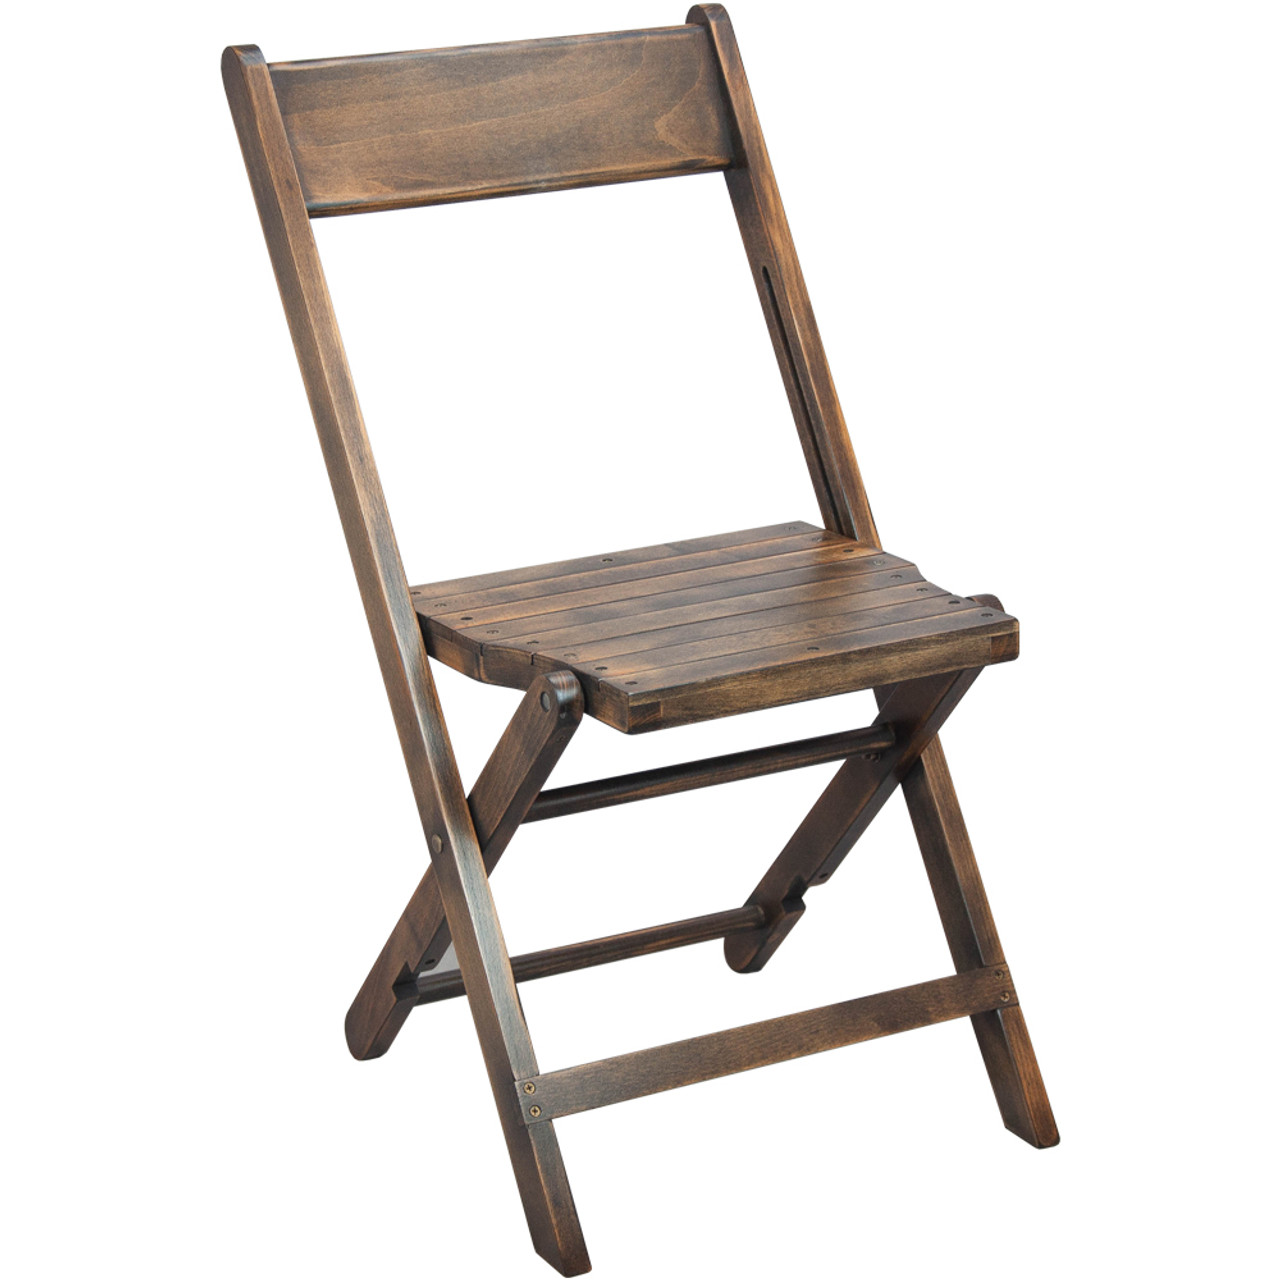 Antique Black Wood Folding Wedding Chair | Slatted Wedding Chairs For Sale - Antique Black Wood Folding Wedding Chair Slatted Wedding Chairs